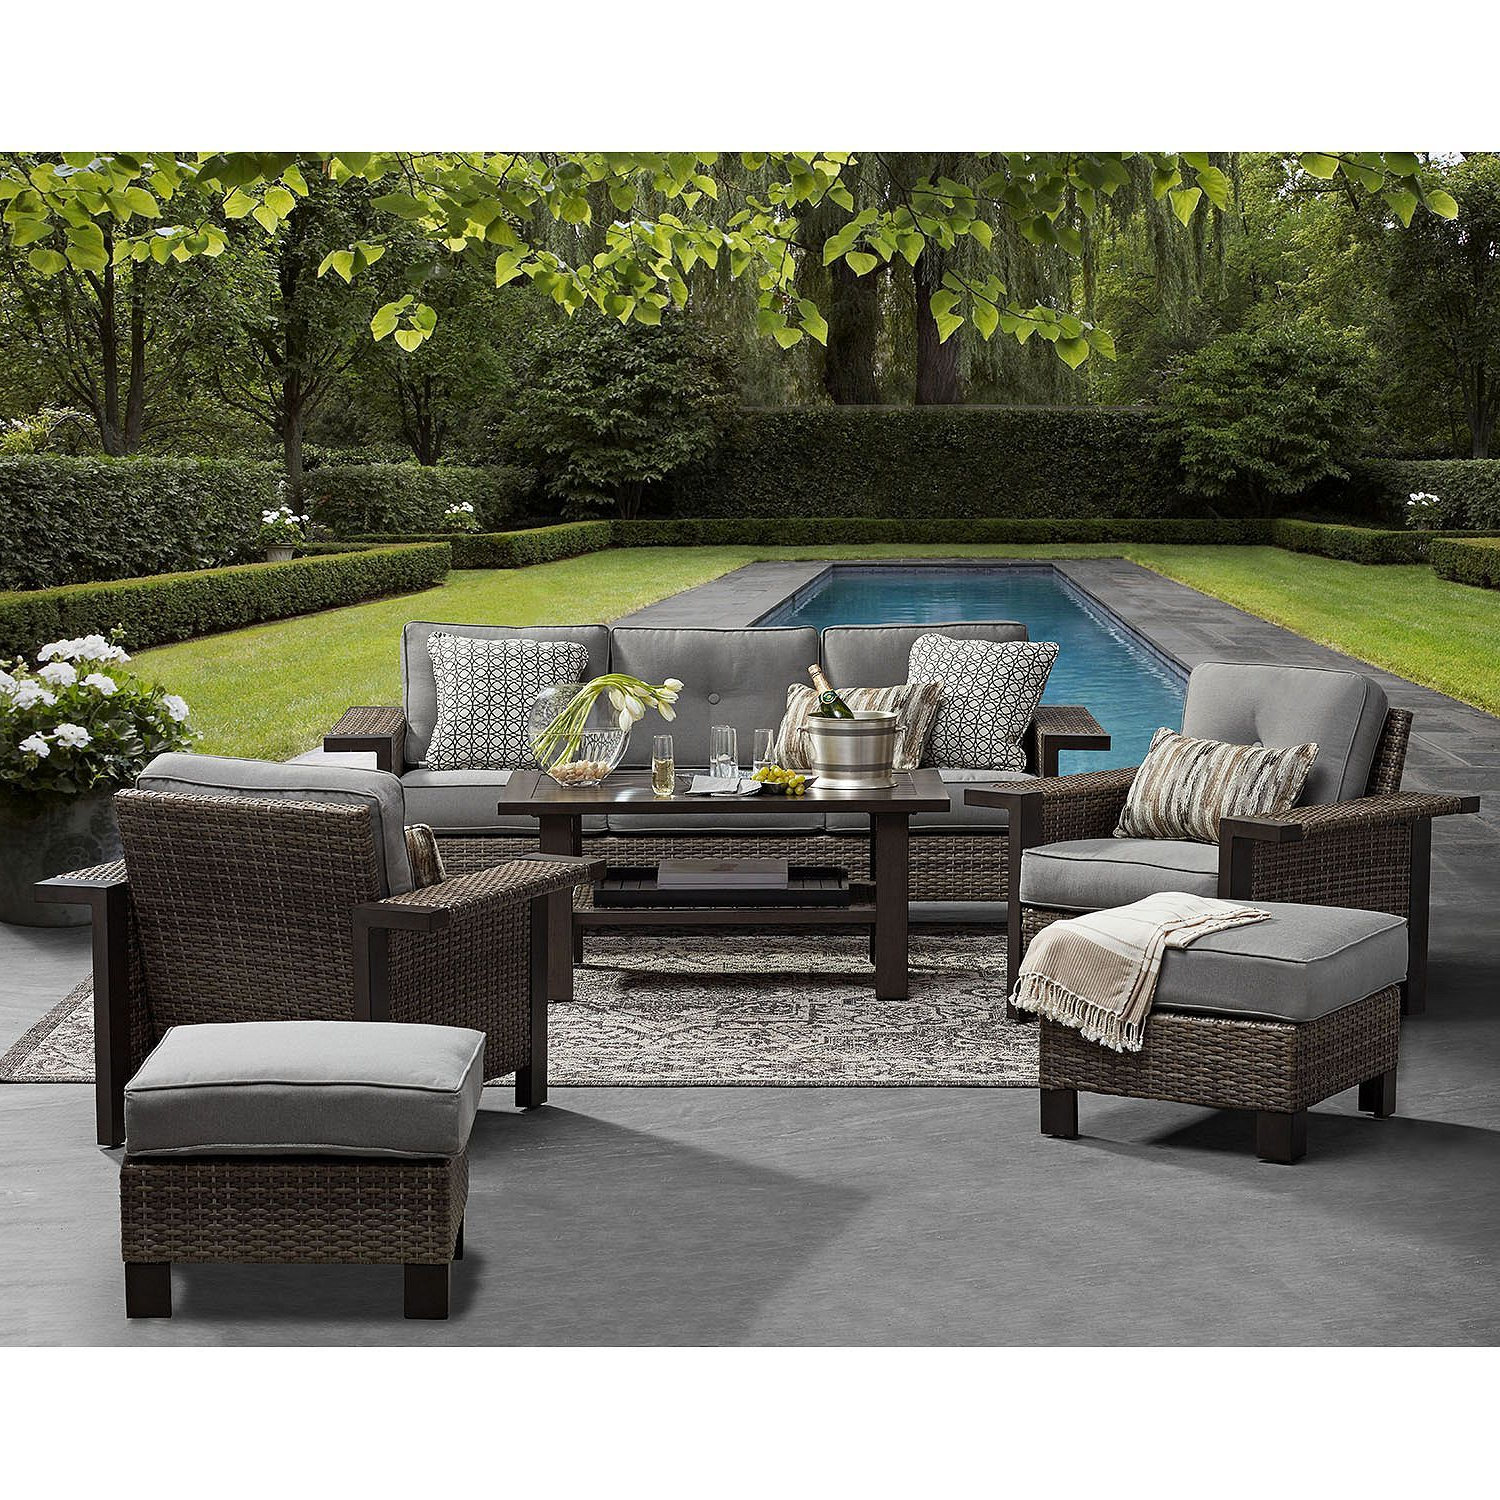 Favorite Avadi Outdoor Sofas & Ottomans 3 Piece Set With Regard To Member's Mark Agio Manchester 6 Piece Patio Deep Seating Set (View 17 of 25)